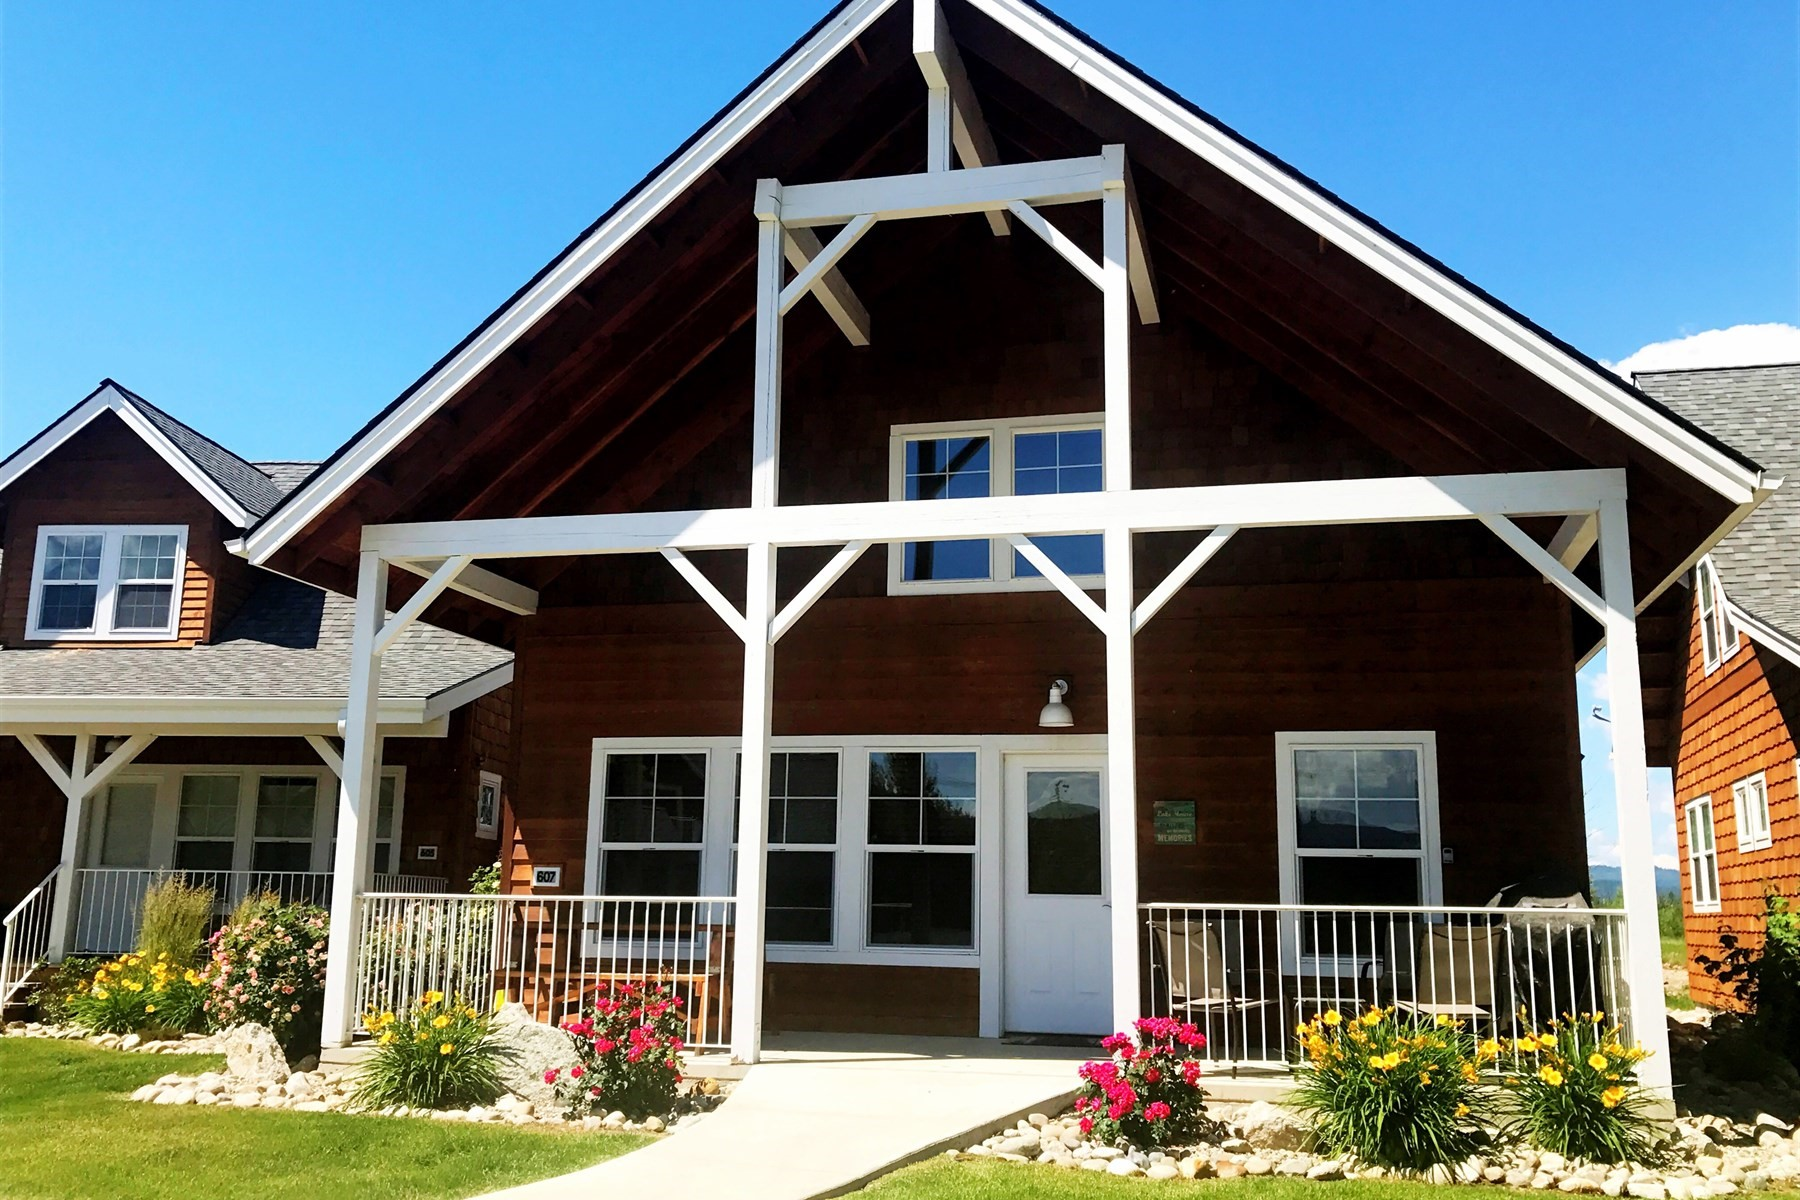 Casa Unifamiliar por un Venta en Four Season Resort Living in Dover Bay 607 Pomrankey Loop Dover, Idaho, 83825 Estados Unidos